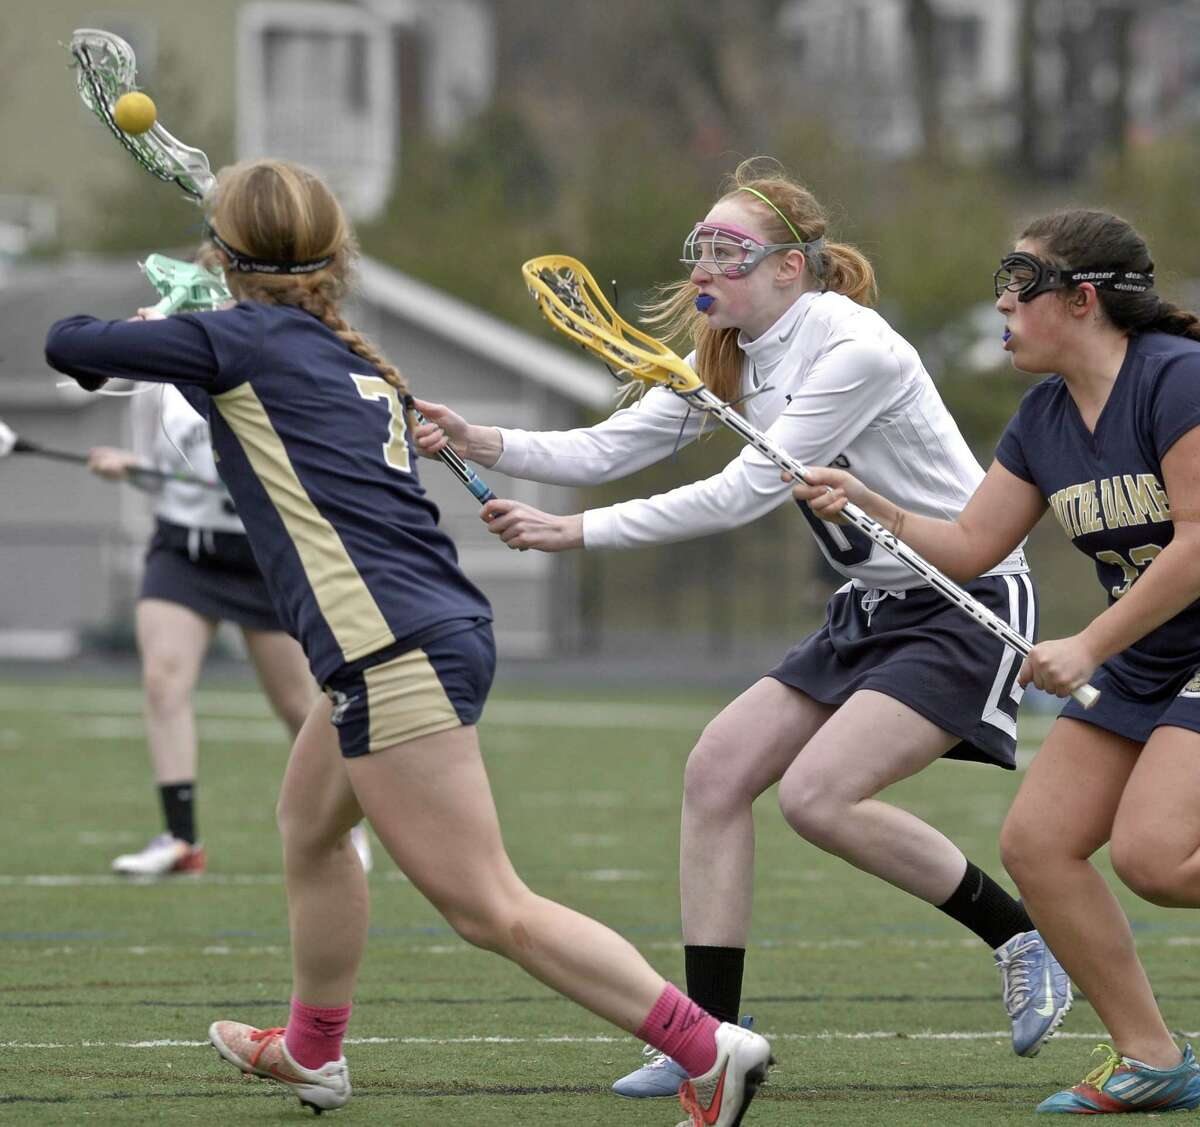 Immaculate's Kara Wakefield (10) goes for the ball between Notre Dame's Delaney O'Keefe (7) and Alicia Berard during the girls high school lacrosse game between Notre Dame-Fairfield and Immaculate high schools, on Friday afternoon, April 10, 2015, played at Immaculate High School, in Danbury, Conn.